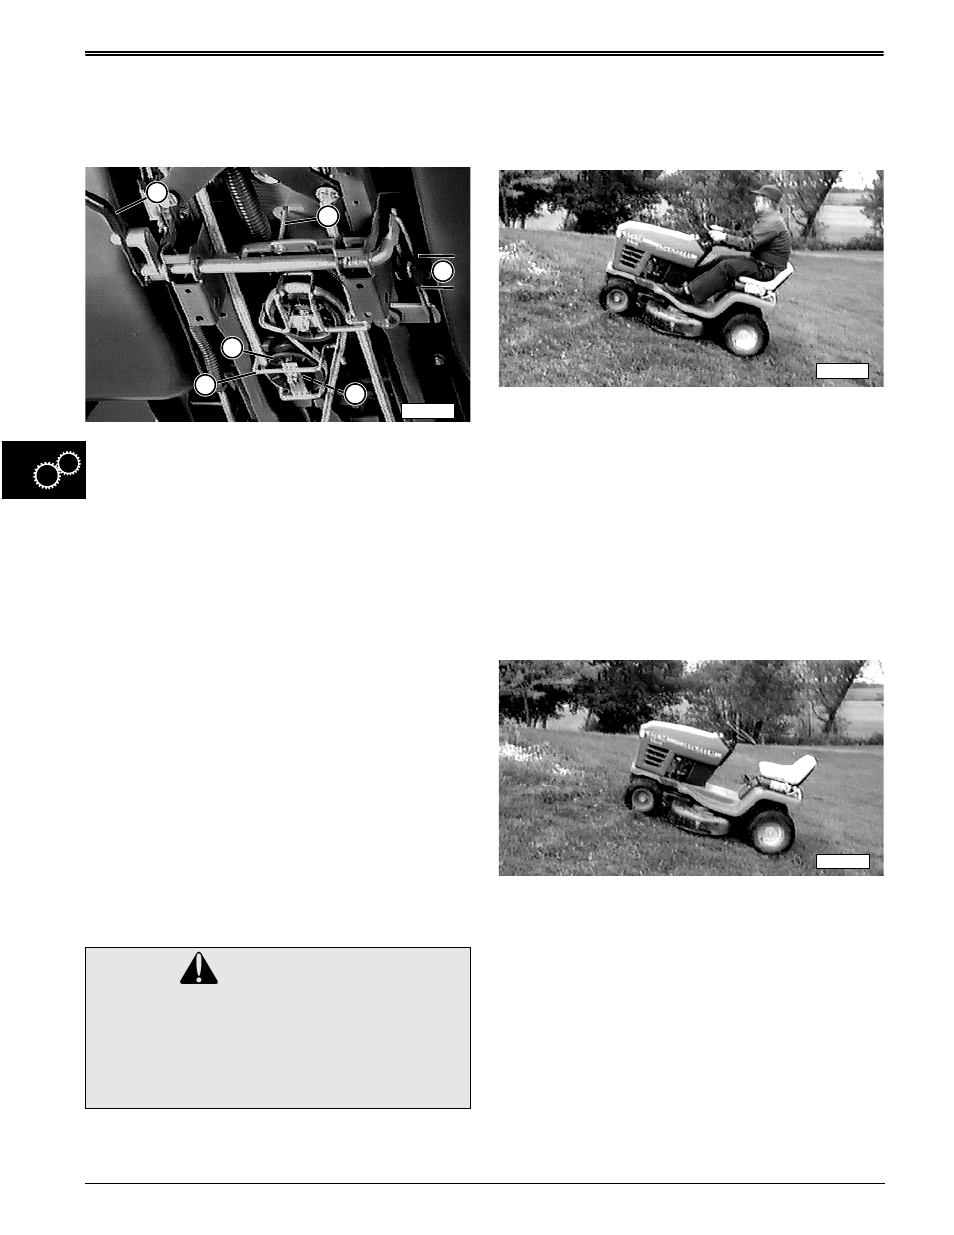 John Deere Stx Wiring Diagram Caution Clutch Spring Adjustment John Deere Stx38 User